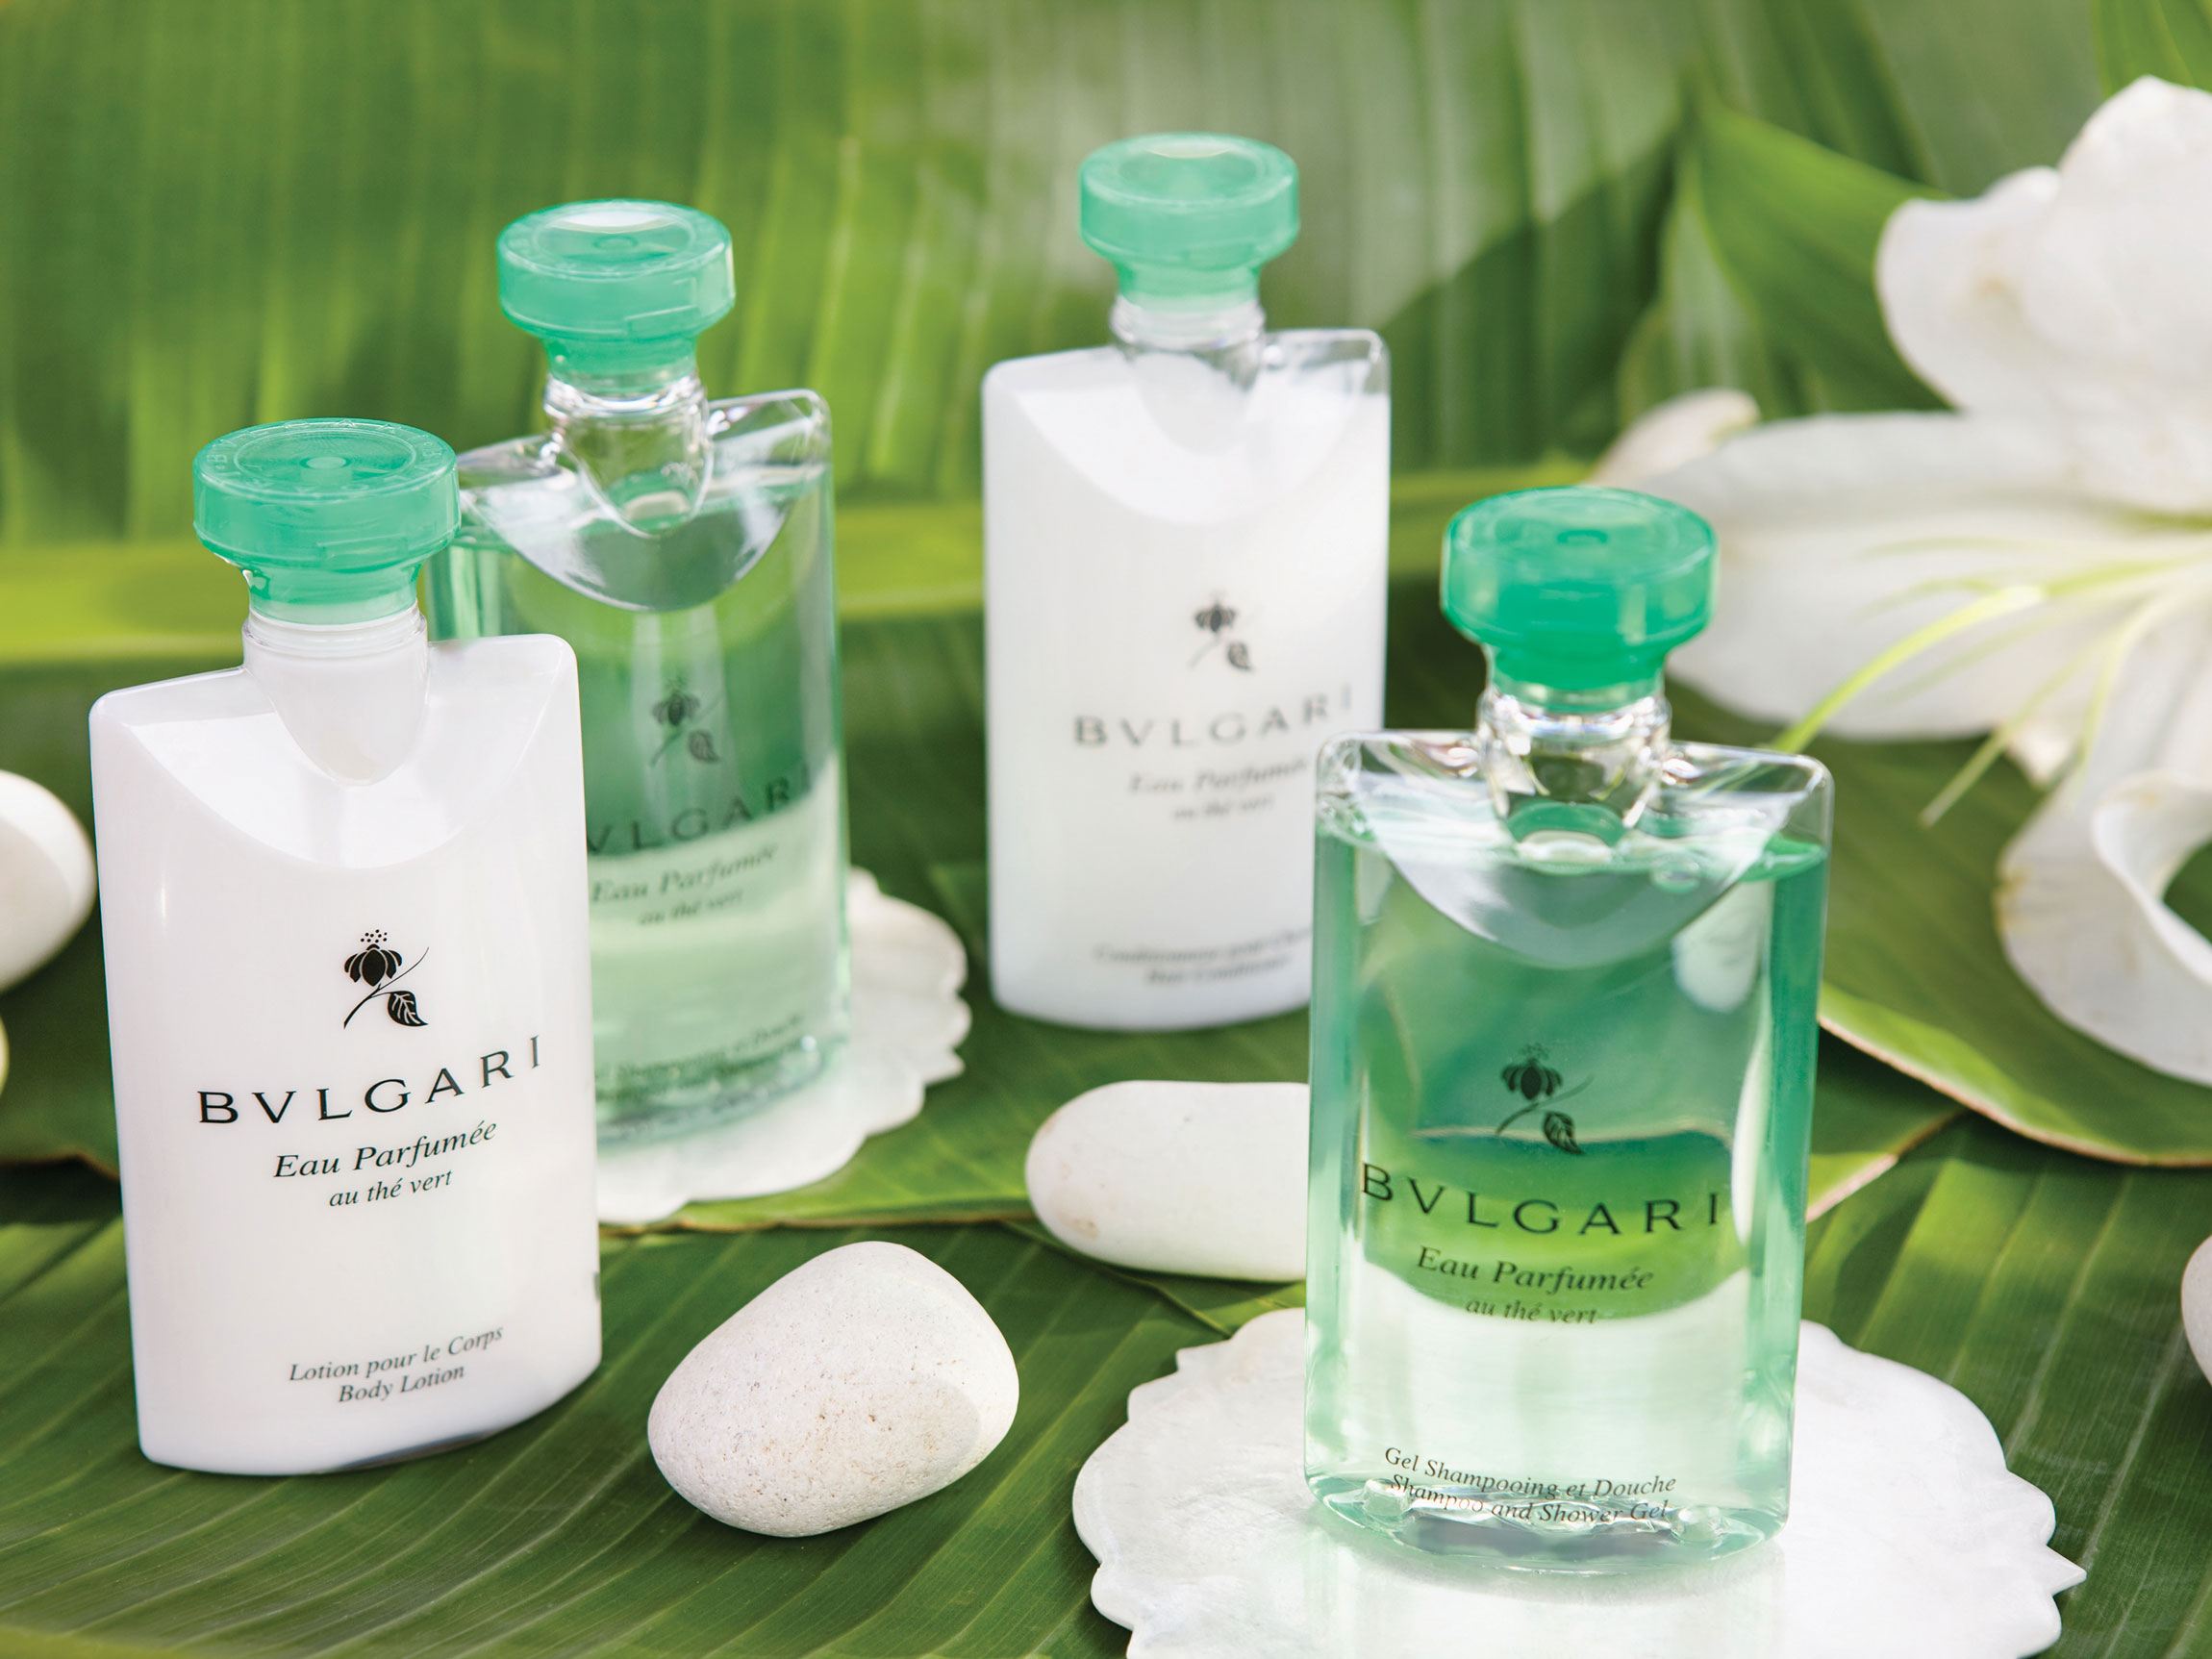 Punta Cana Resort Bvlgari Amenities